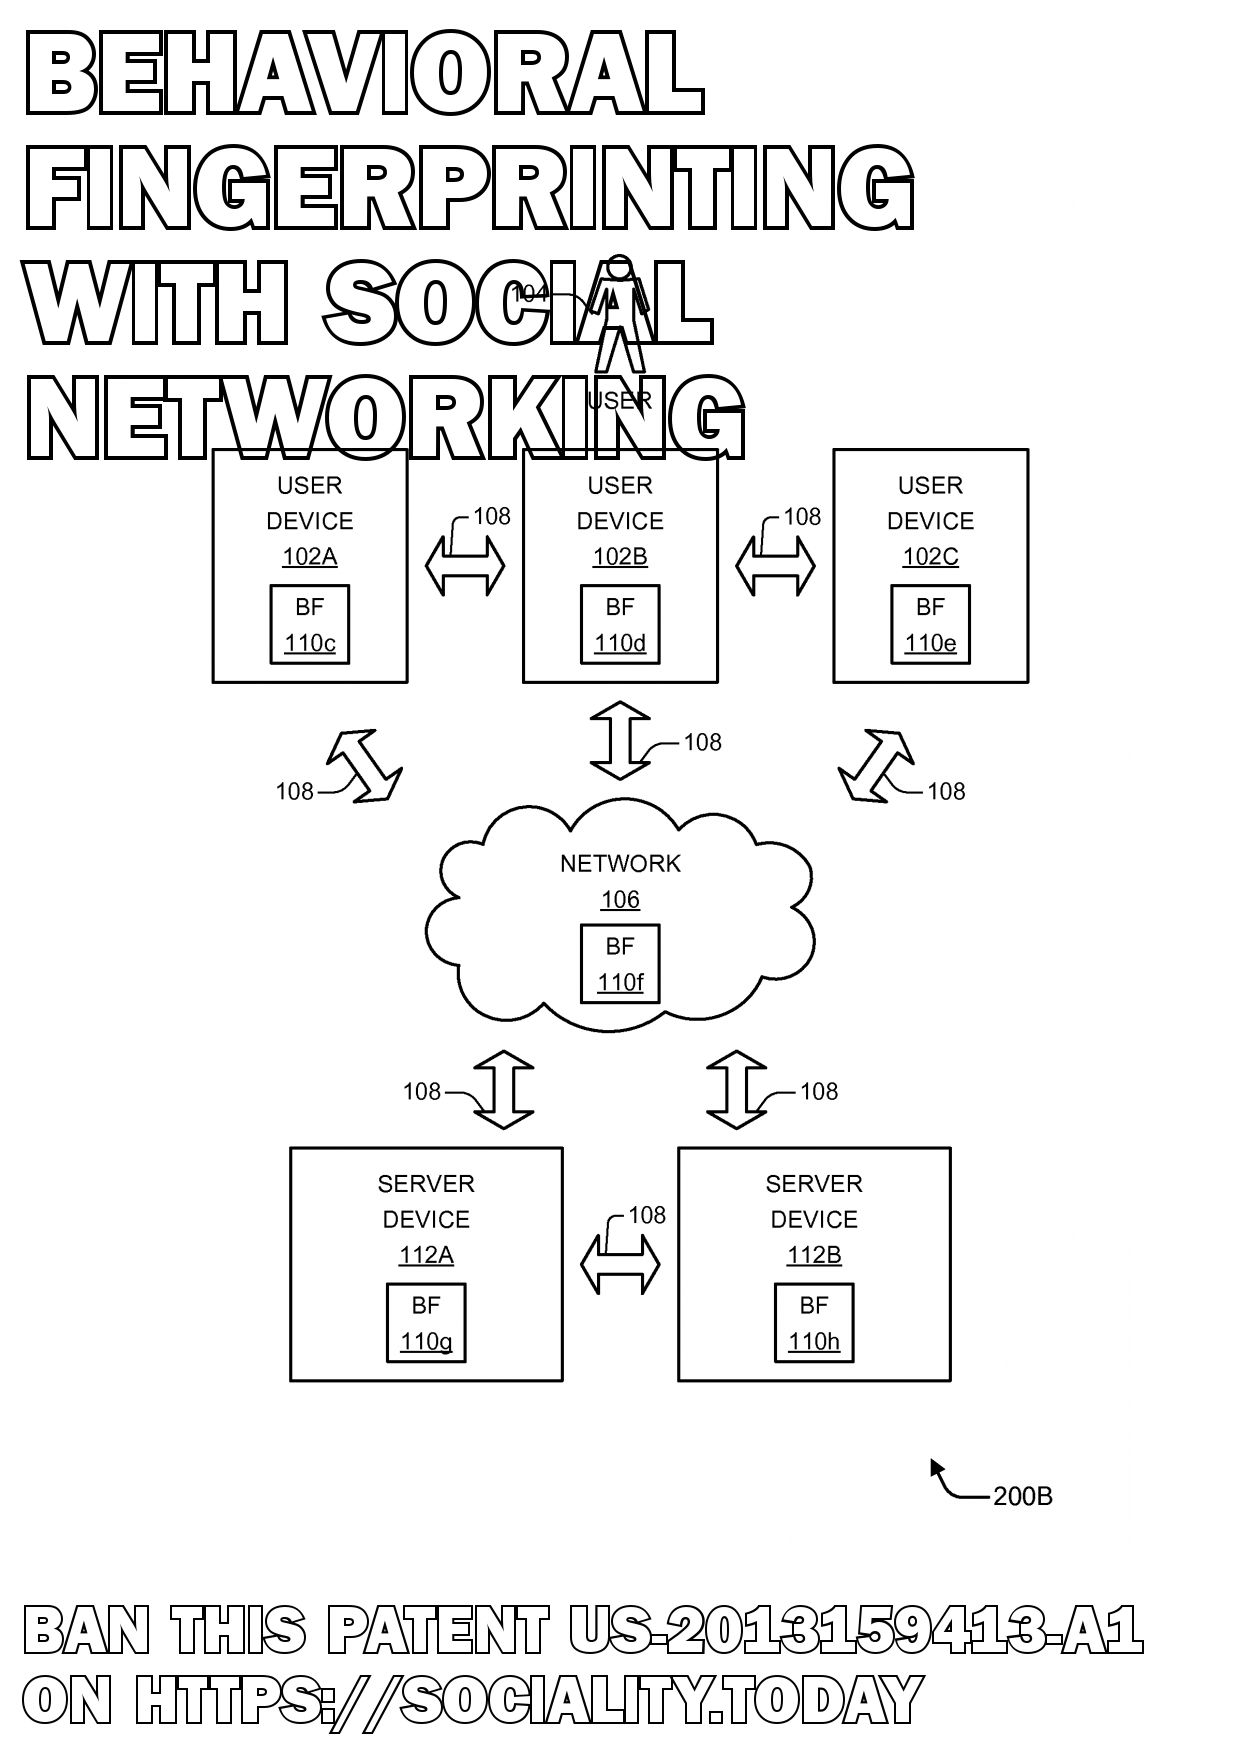 Behavioral fingerprinting with social networking  - US-2013159413-A1